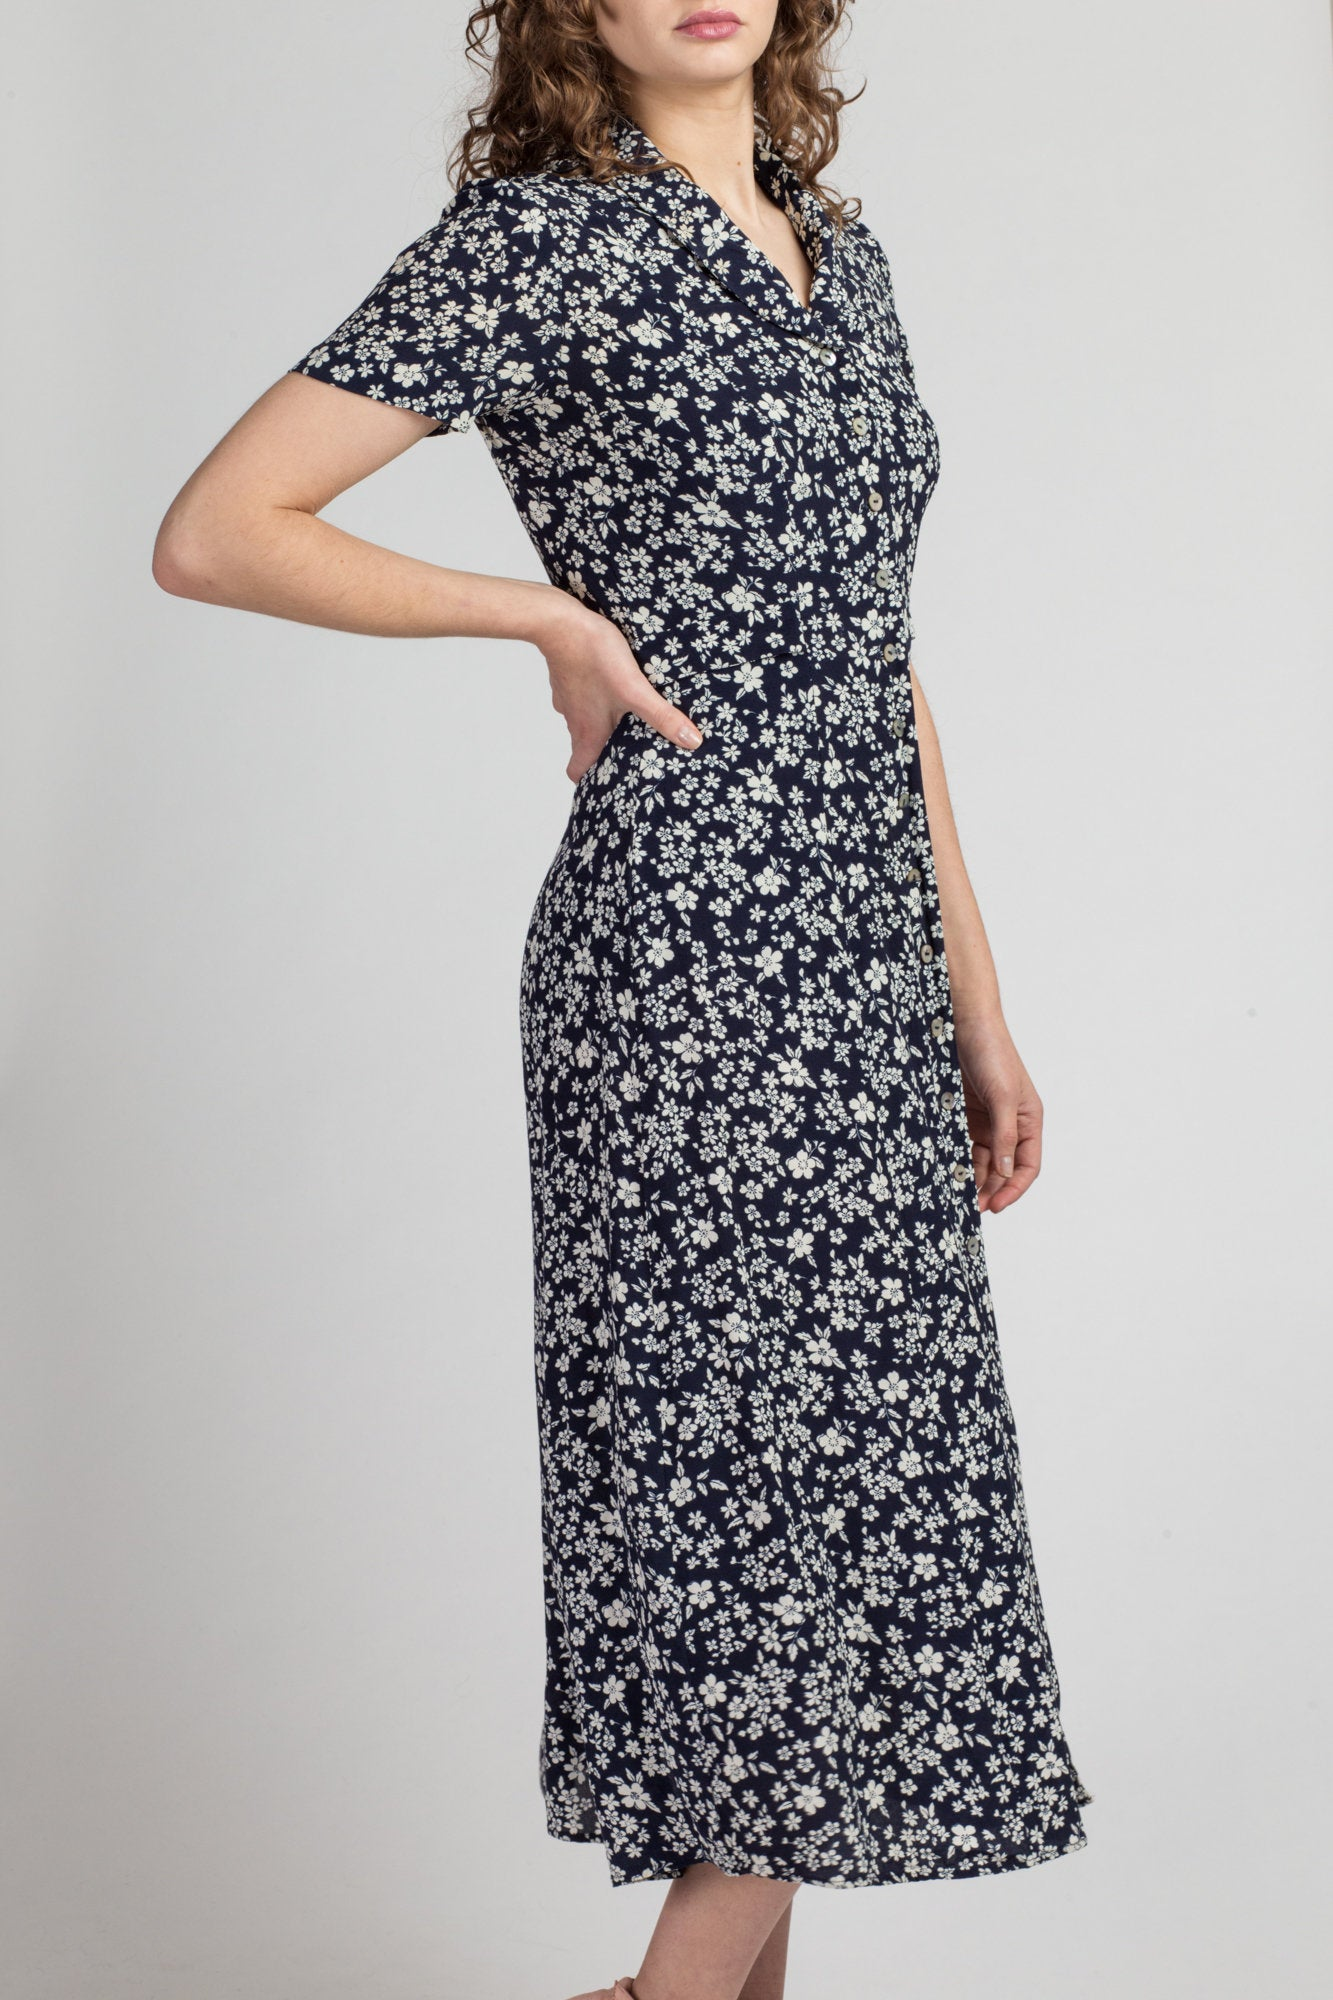 90s Calico Floral Print Midi Dress - Small | Vintage Navy Blue White Short Sleeve V Neck Grunge Dress